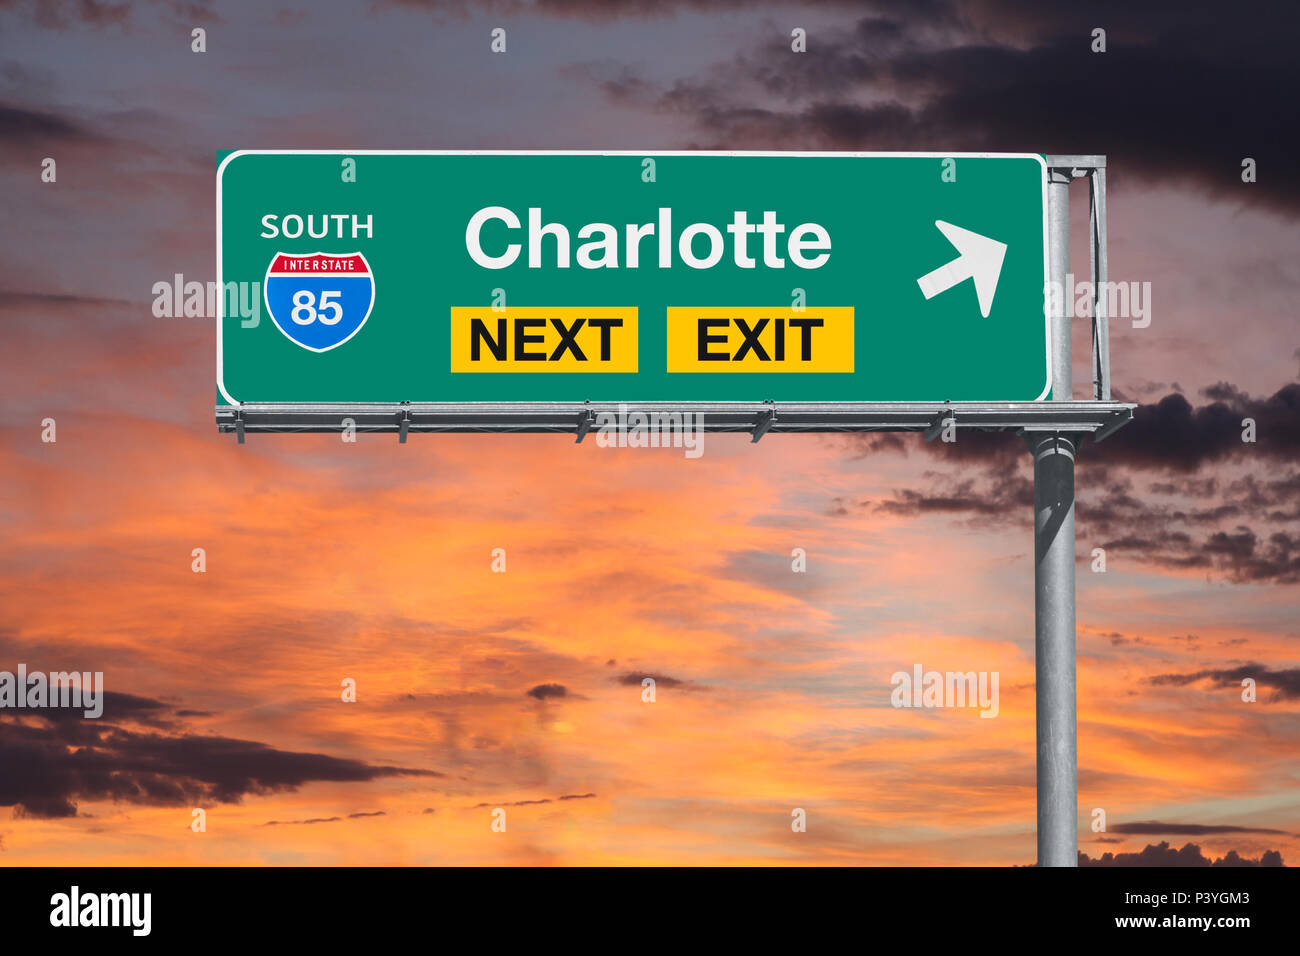 Charlotte North Carolina route 85 freeway next exit sign with sunset sky. - Stock Image